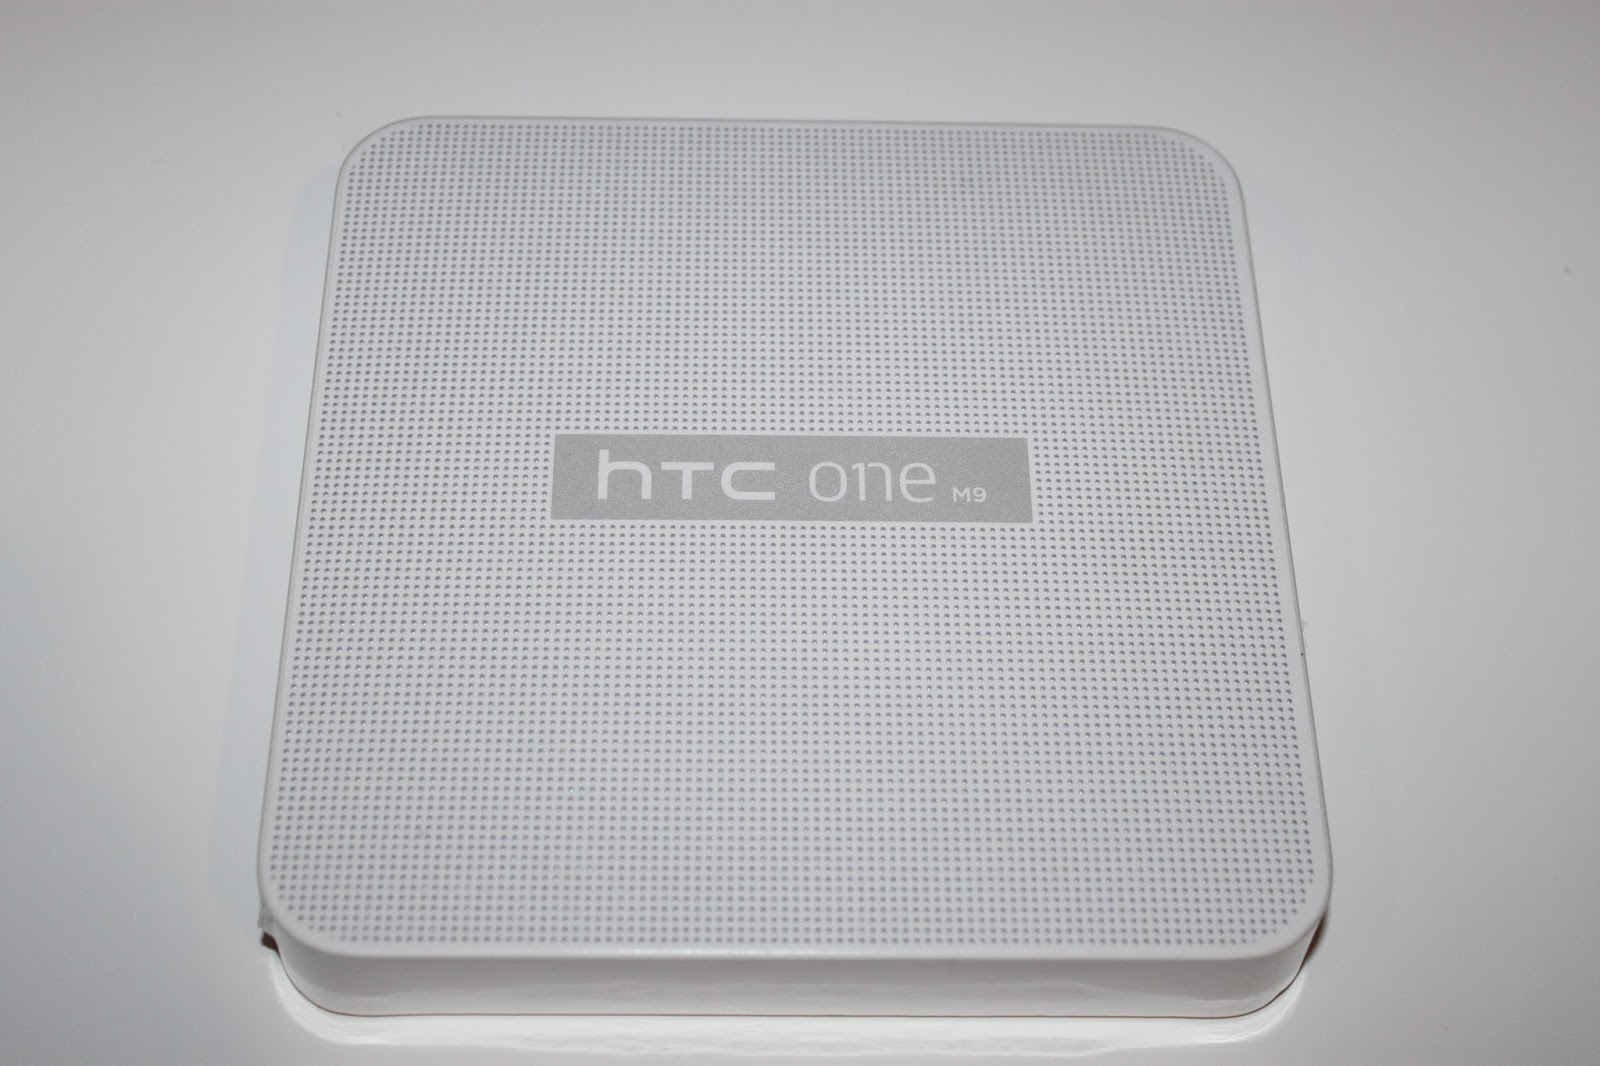 Stereowise Plus: HTC One M9 Premium Smartphone Review